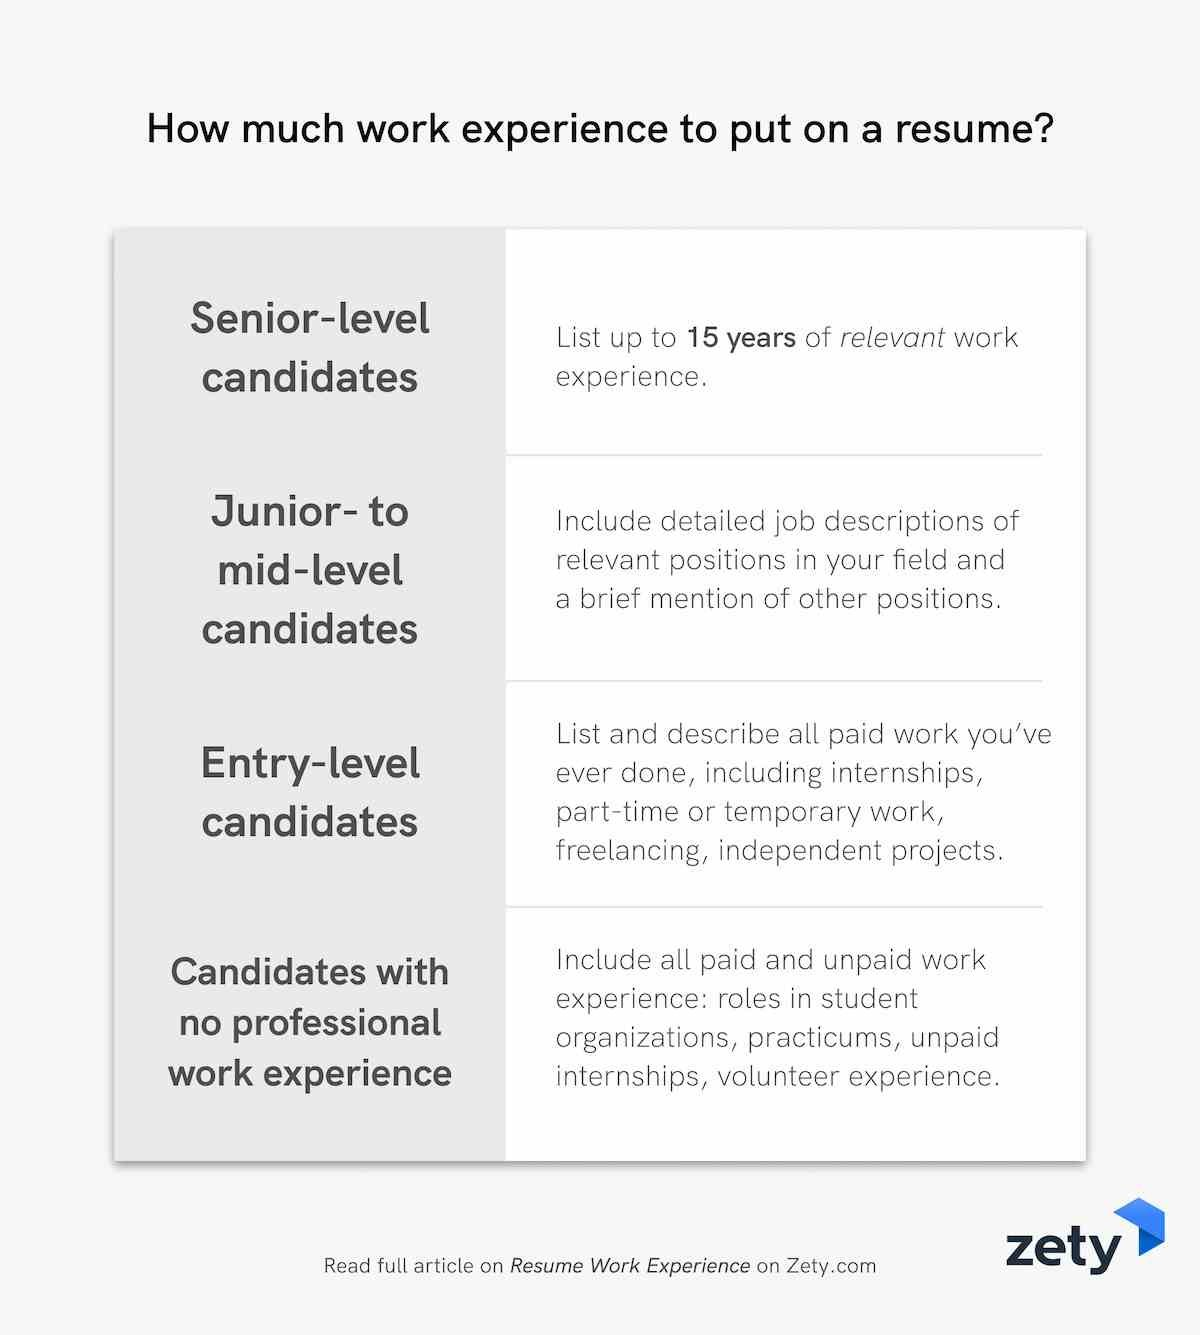 Resume Work Experience, History & Job Description Examples